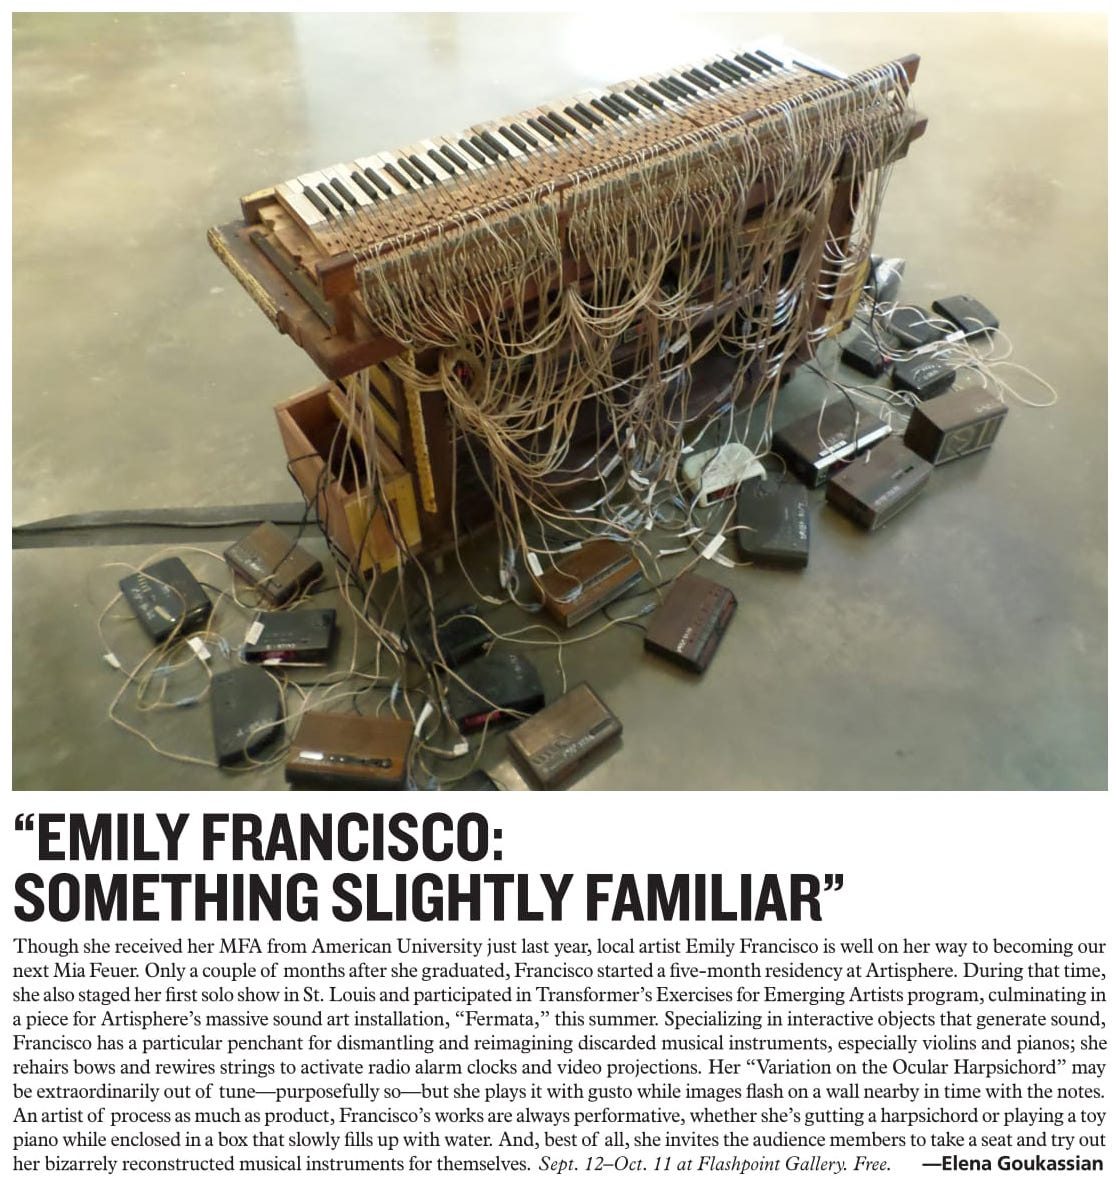 https://www.washingtoncitypaper.com/arts/article/13046055/emily-francisco-something-slightly-familiar-sept-12oct-11-at-flashpoint